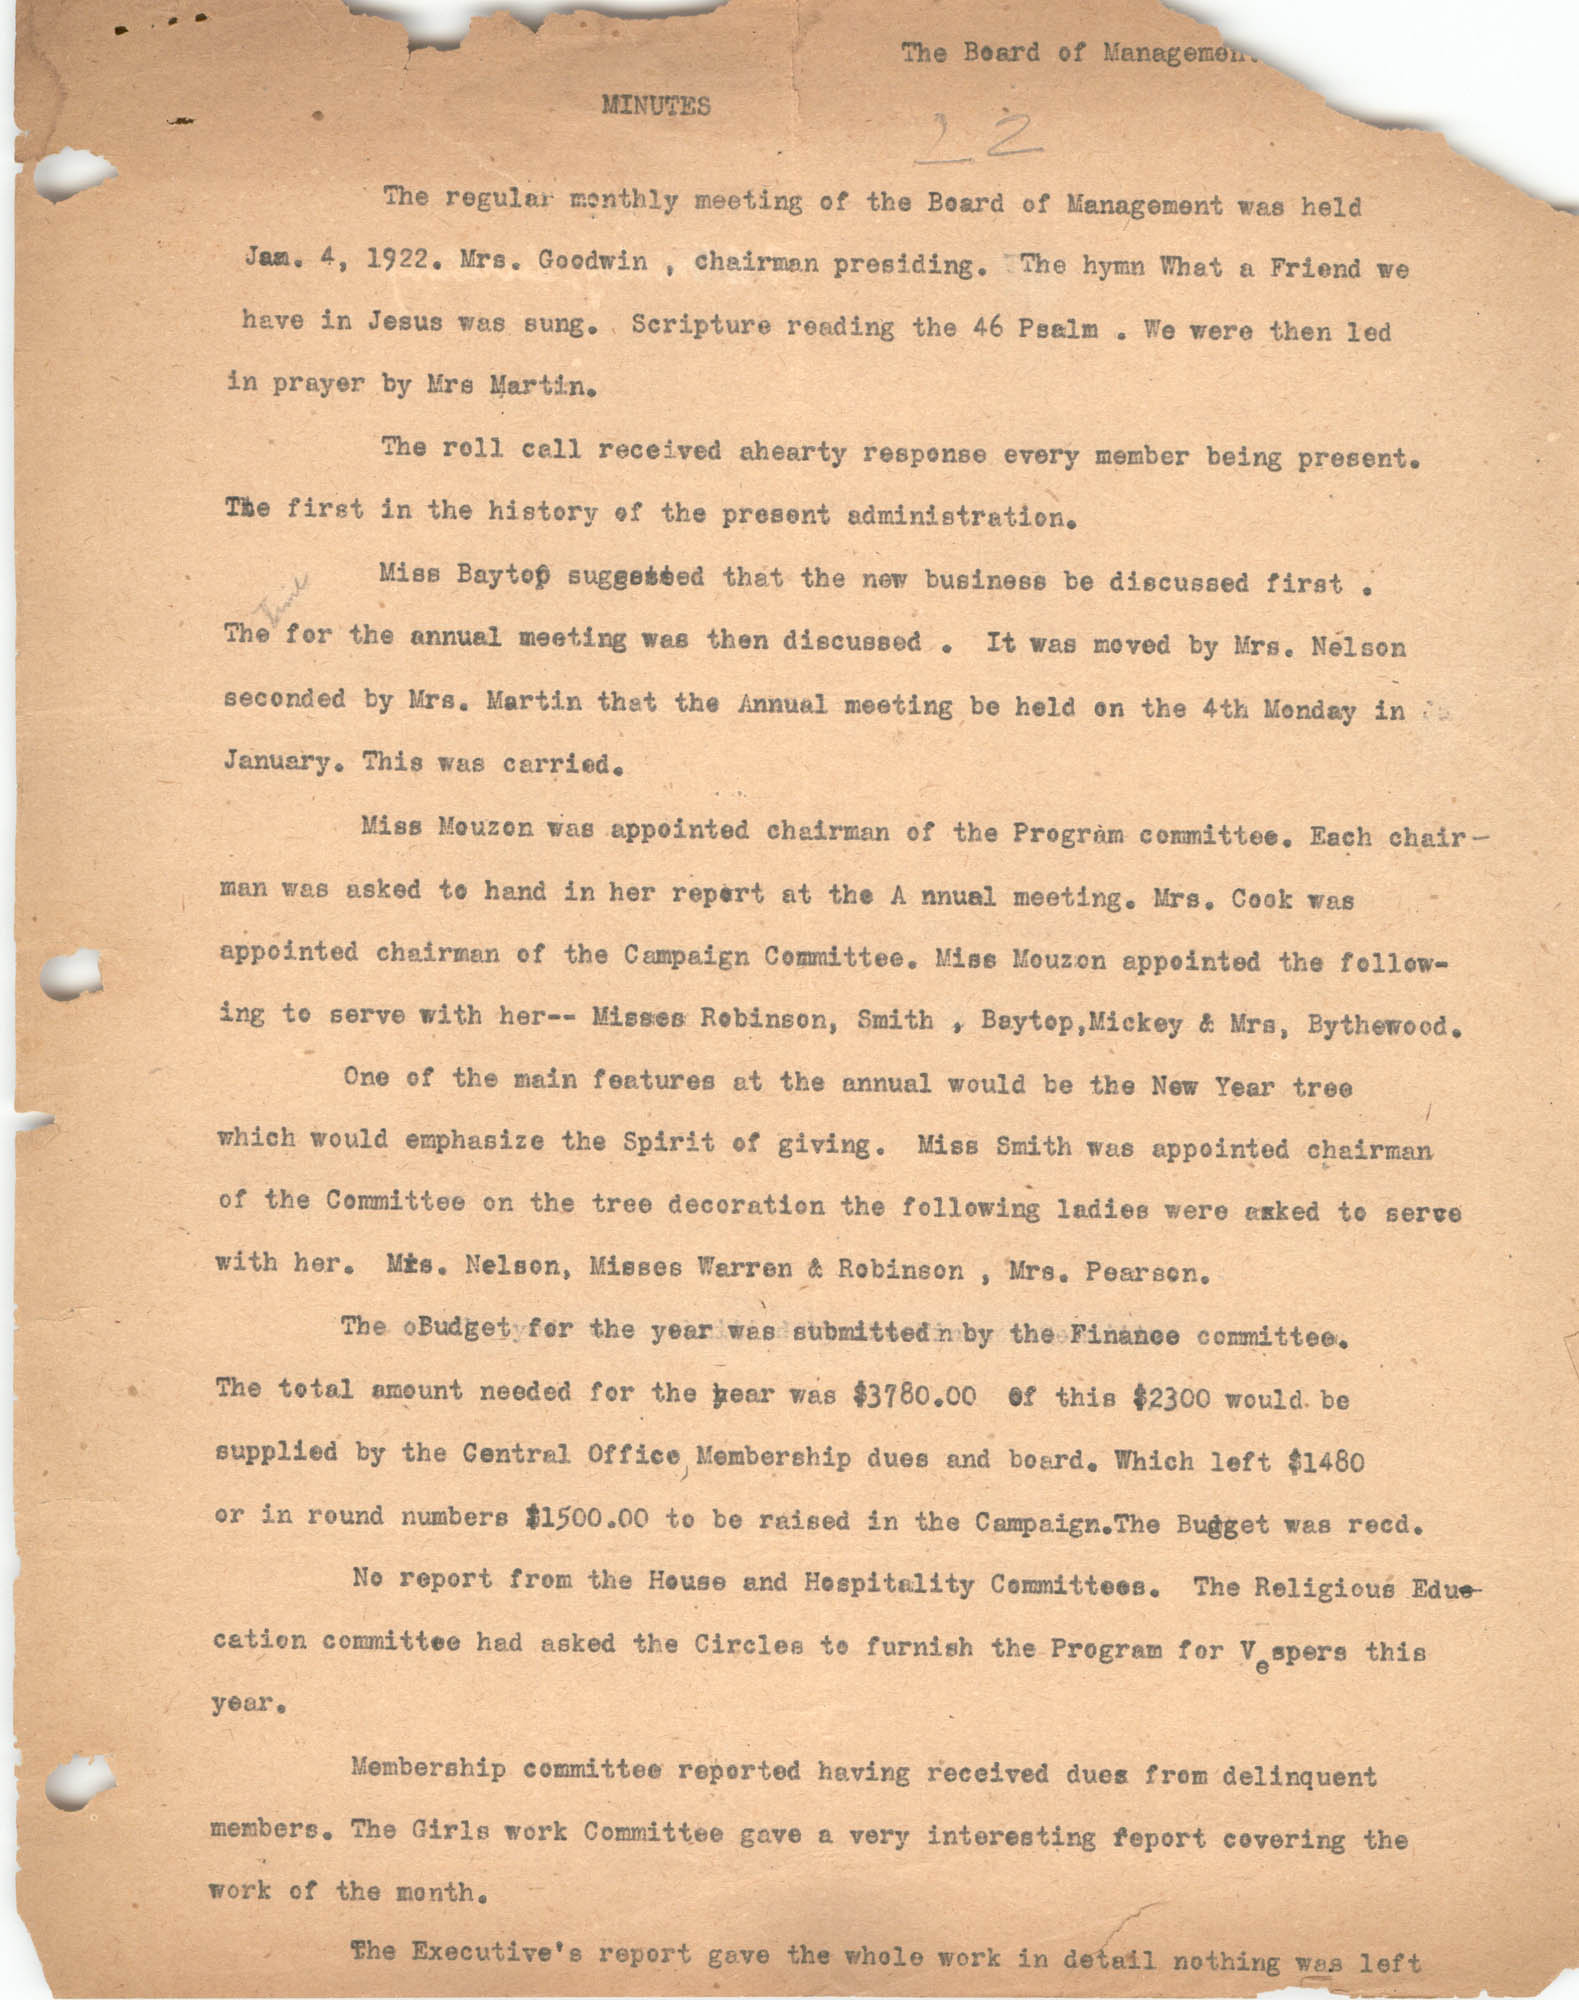 Minutes to the Board of Management Meeting, Coming Street Y.W.C.A., January 4, 1922